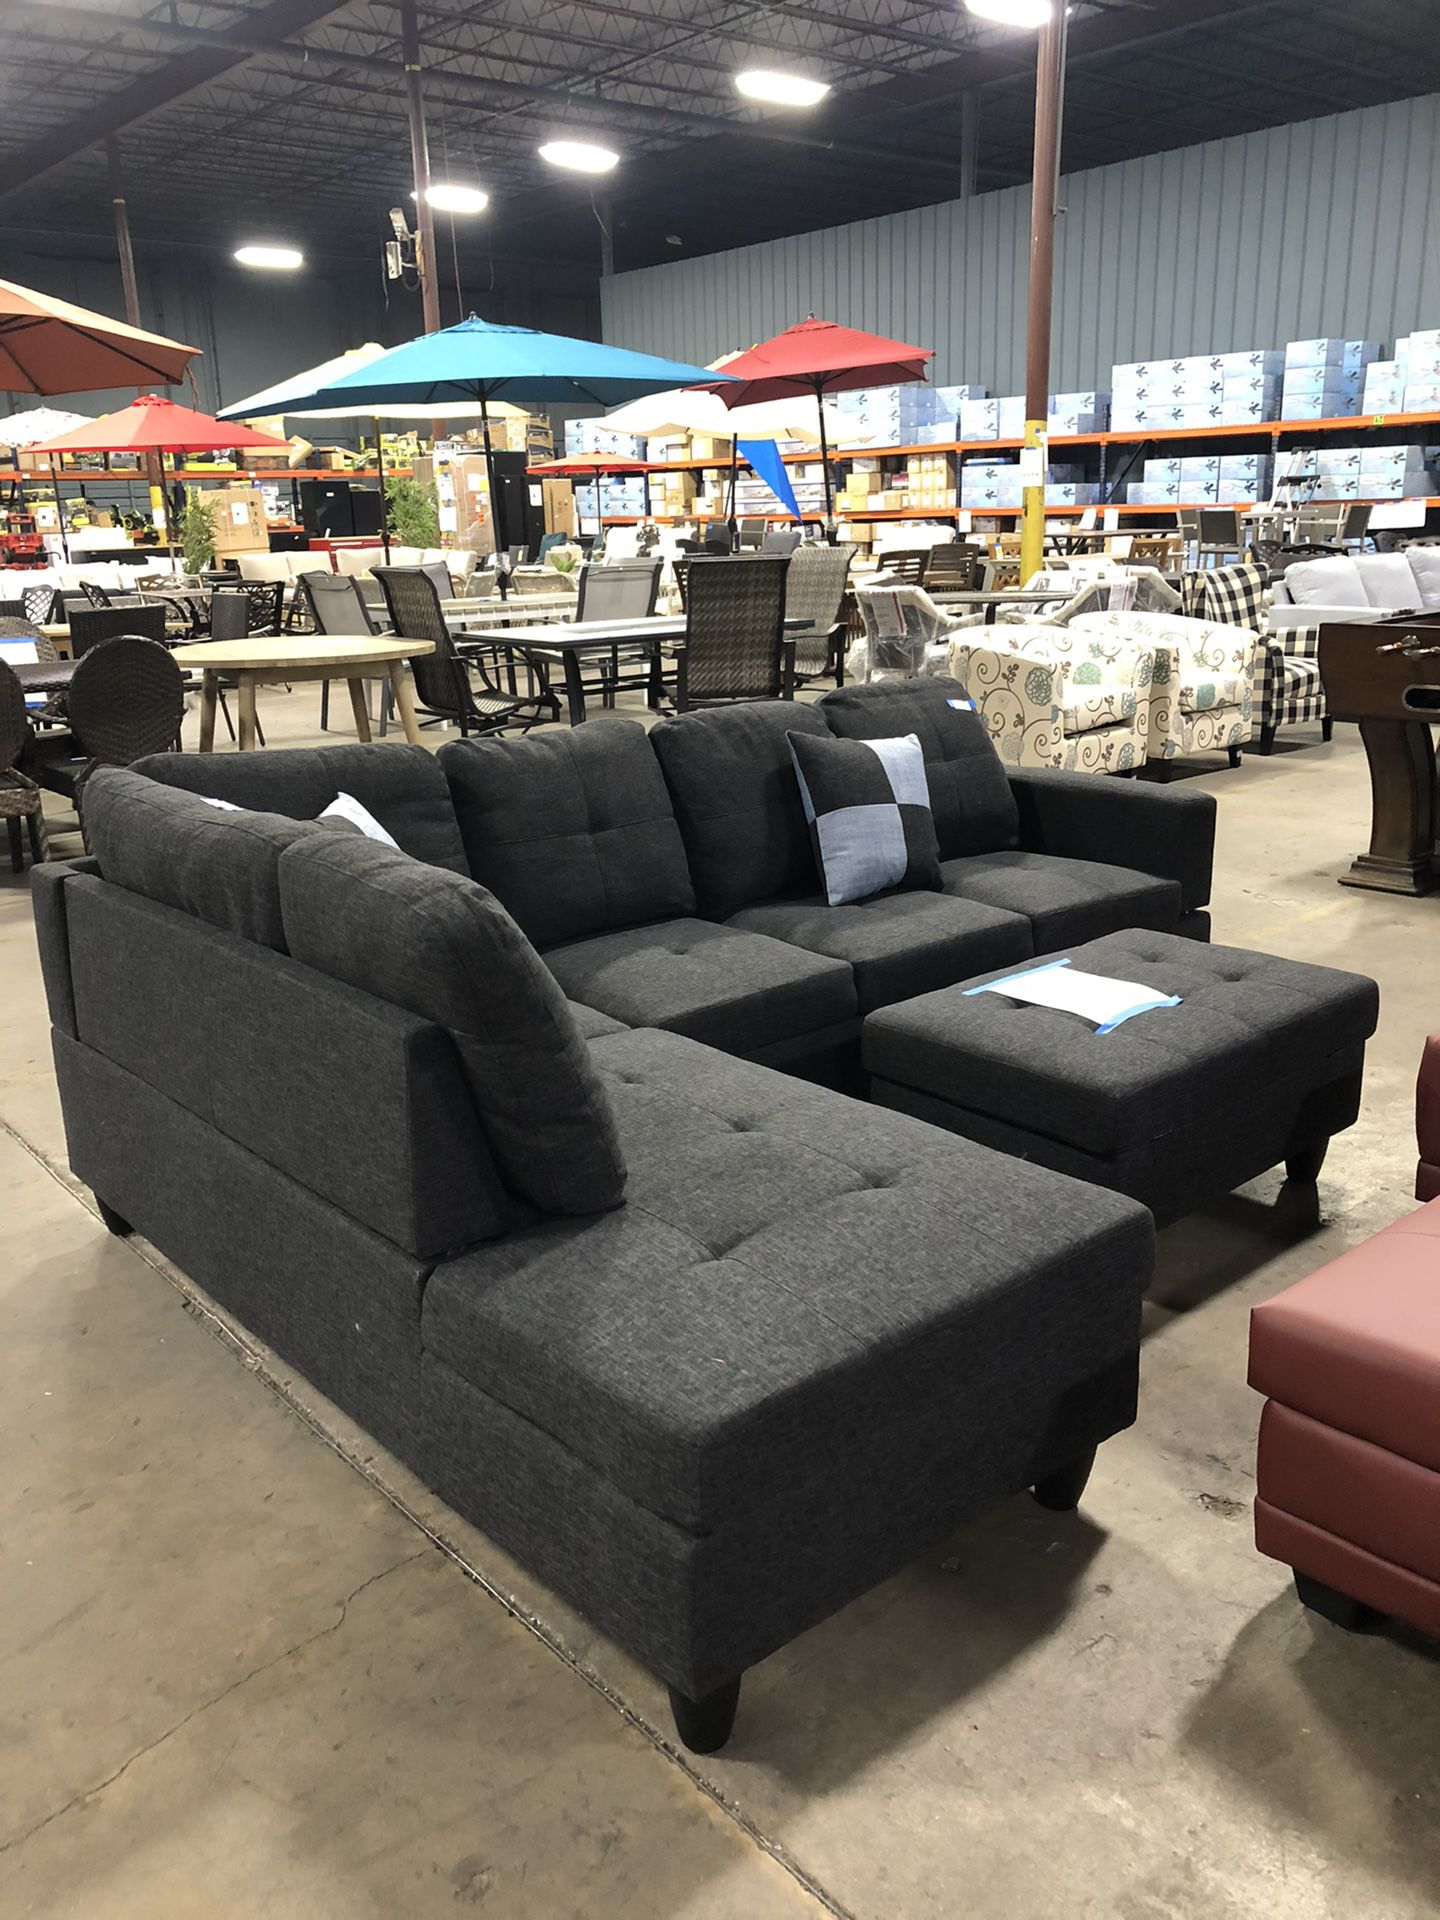 🛋NEW ARRIVAL🤩 3-Piece Jet Black 4-Seater Sofa with Ottoman 😍